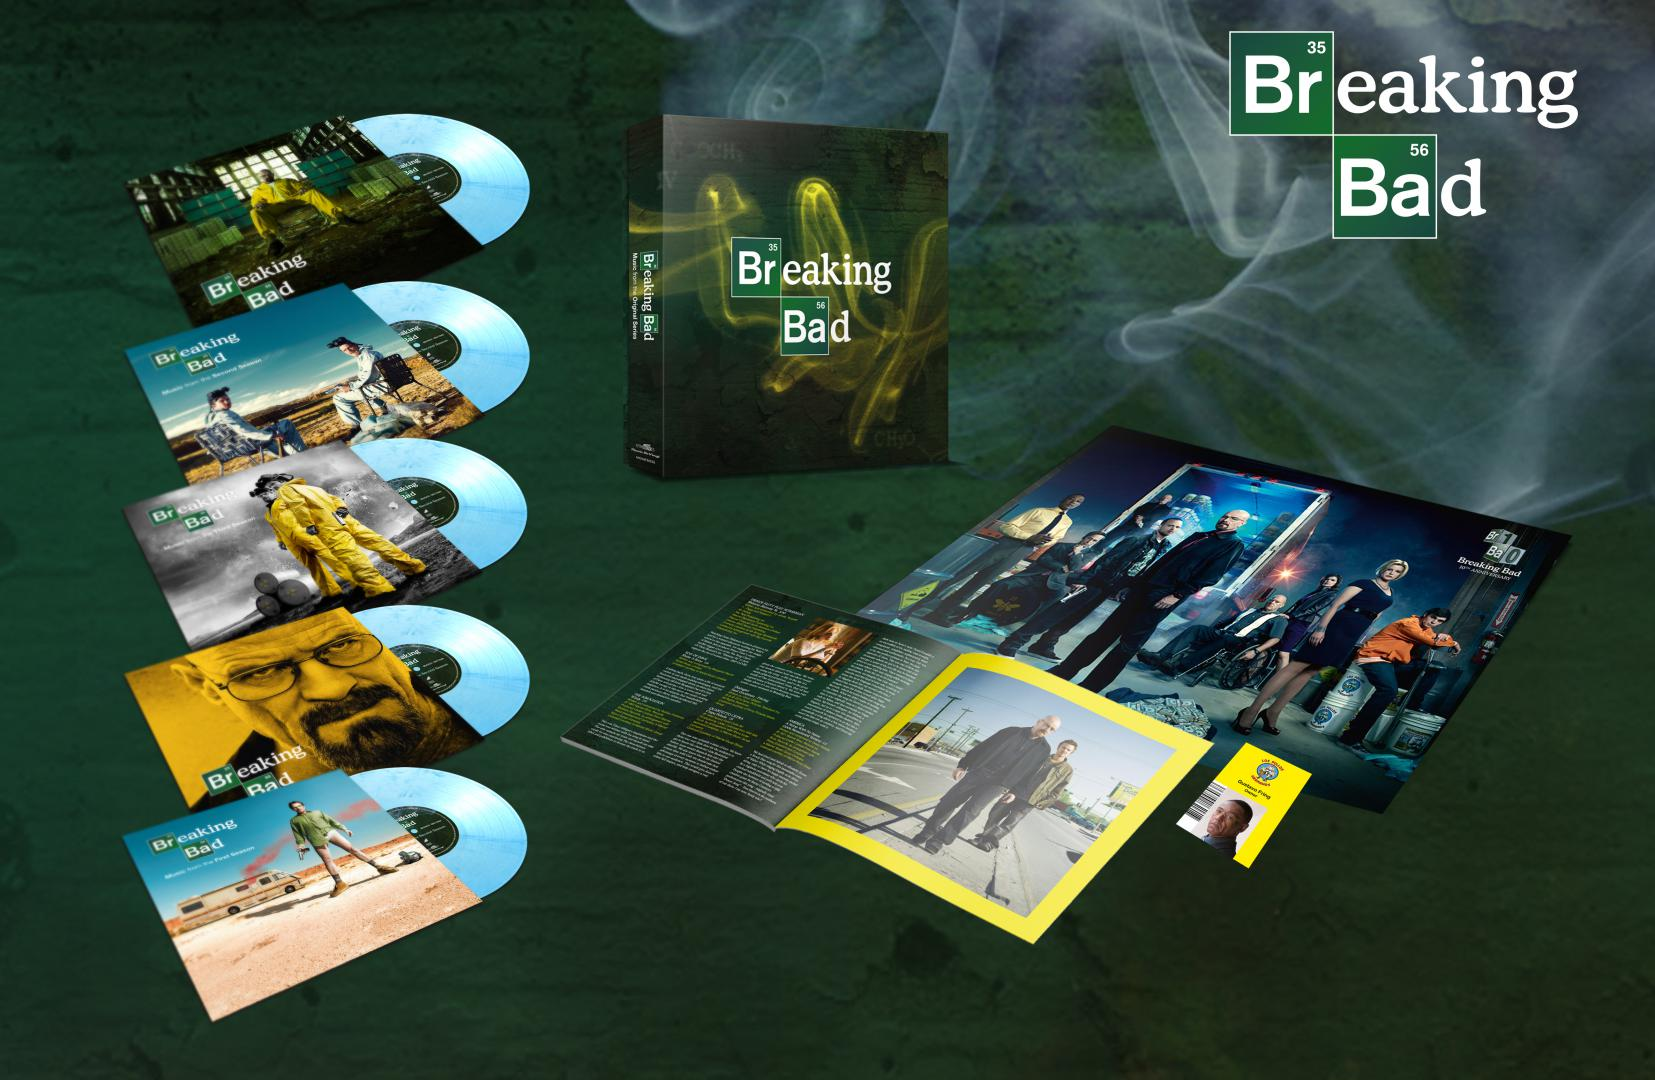 Breaking Bad Collects Series Music For Limited Edition